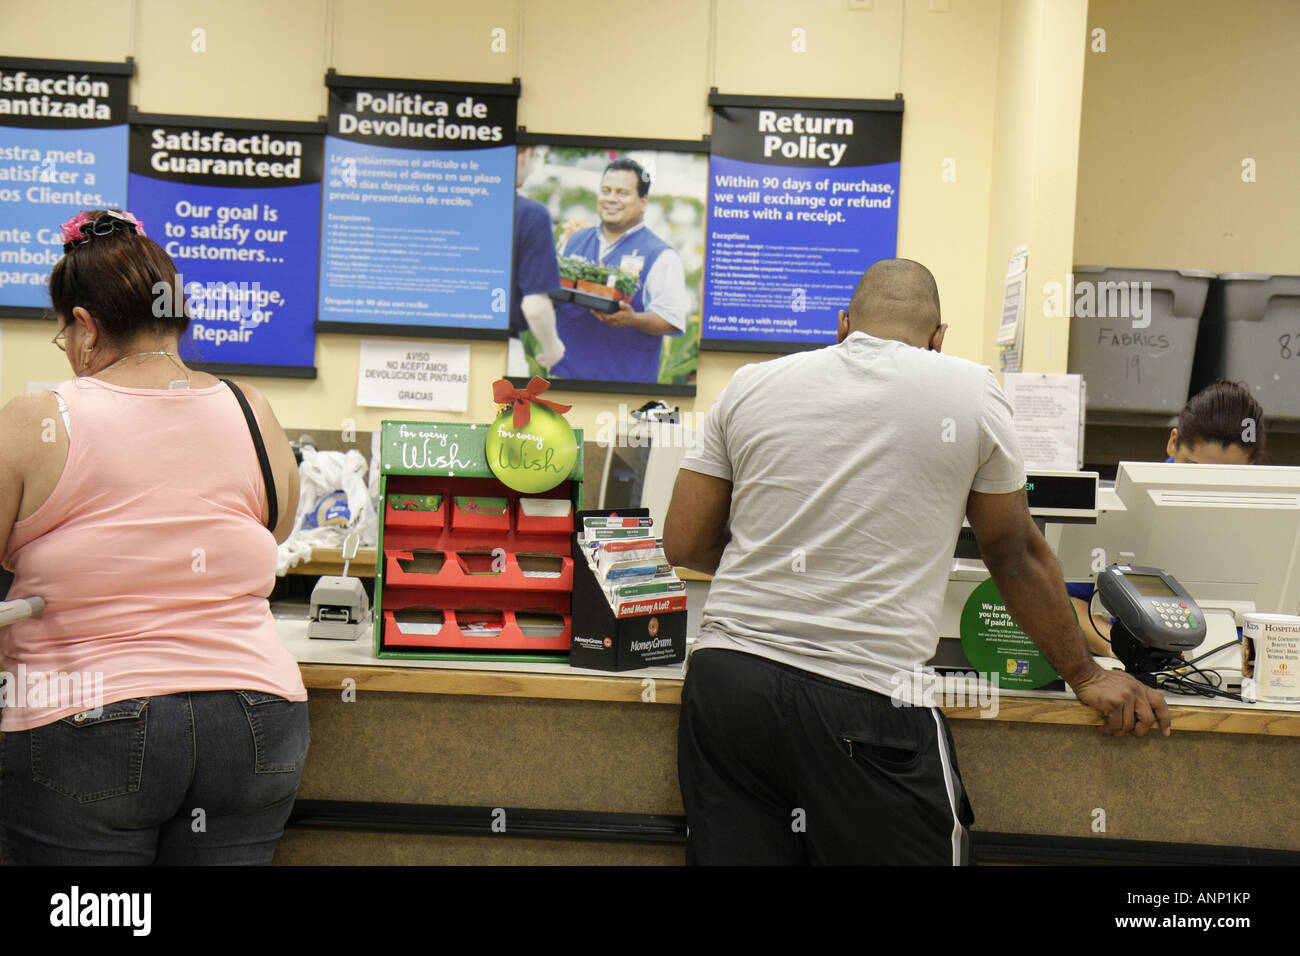 Florida Hialeah Walmart Customer Service Desk Return Policy Posted ...